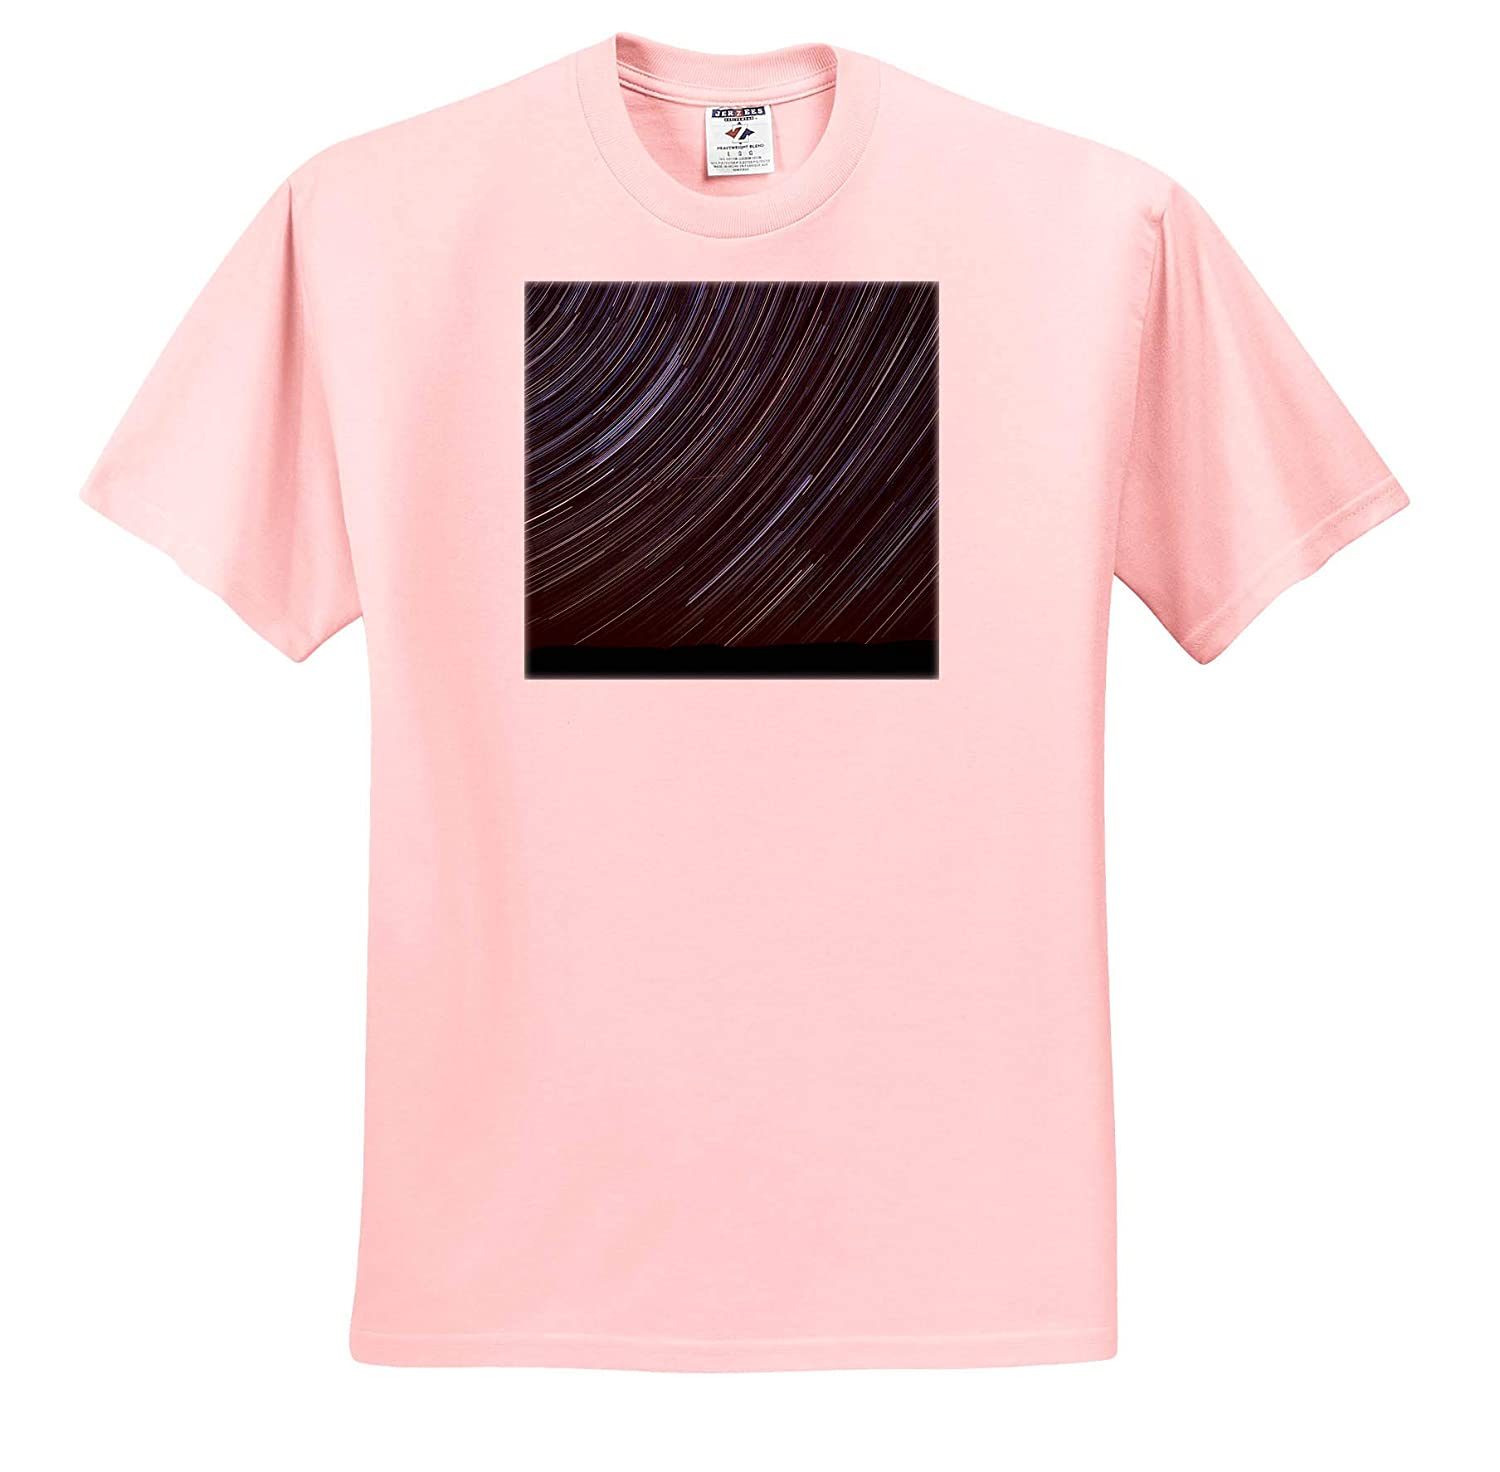 Star Trails and Perseid Meteor Showers Stars ts/_315161 Washington State Adult T-Shirt XL 3dRose Danita Delimont